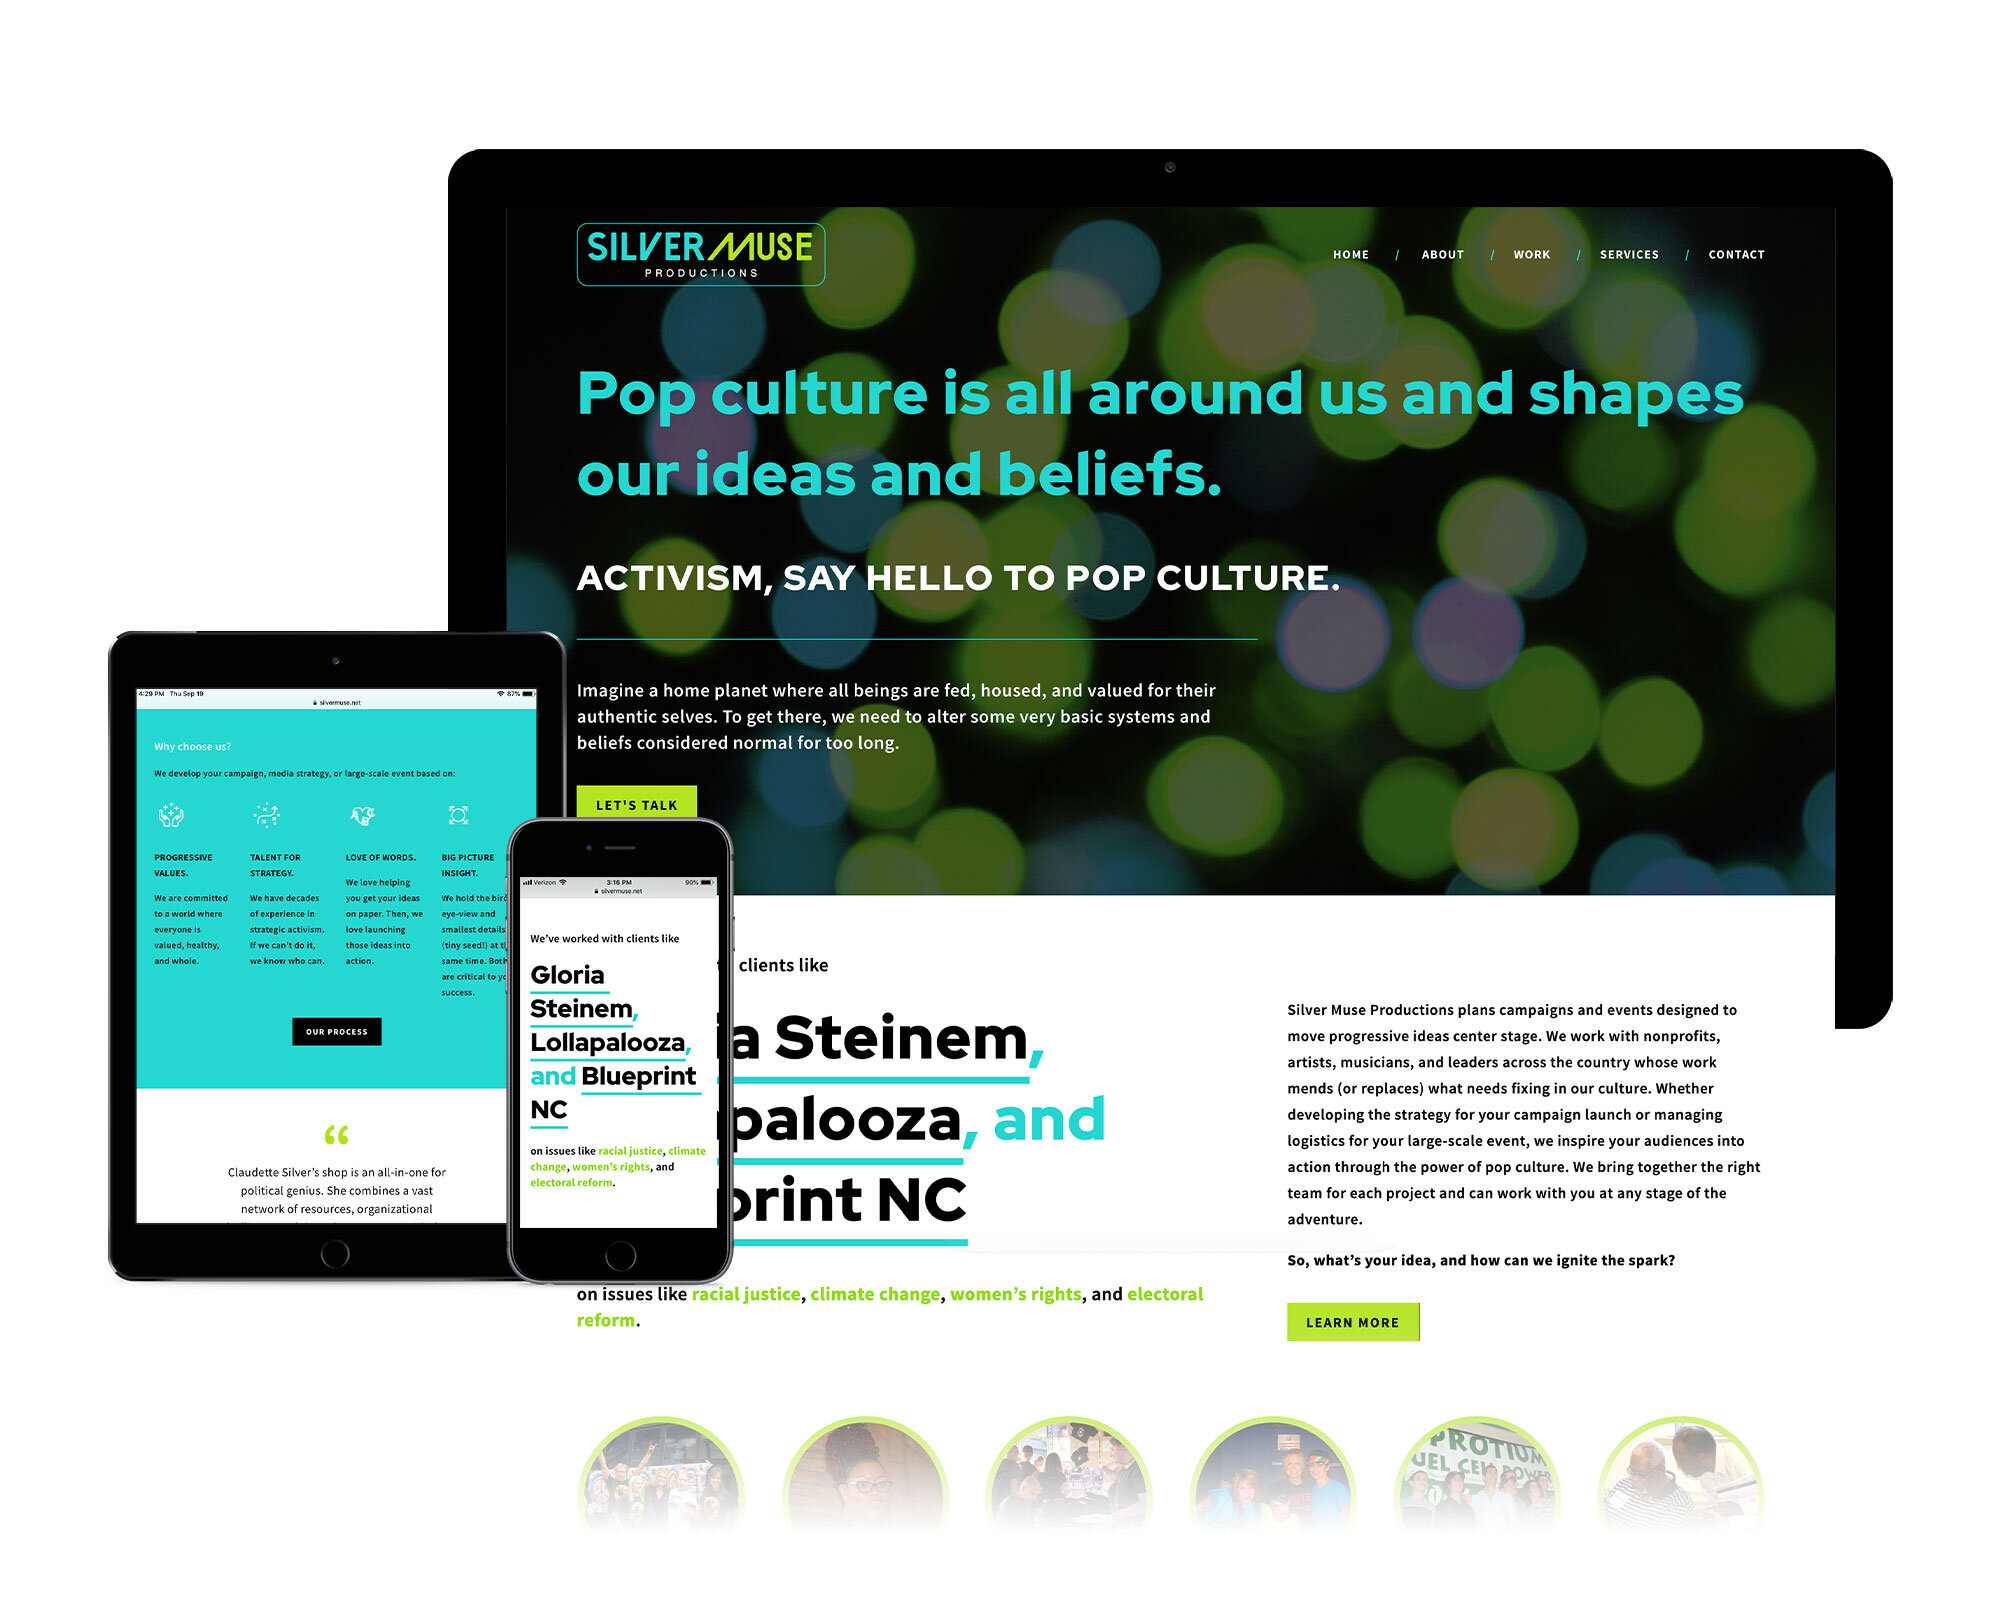 website design for asheville-based event production and campaign planning company, pop culture events for causes